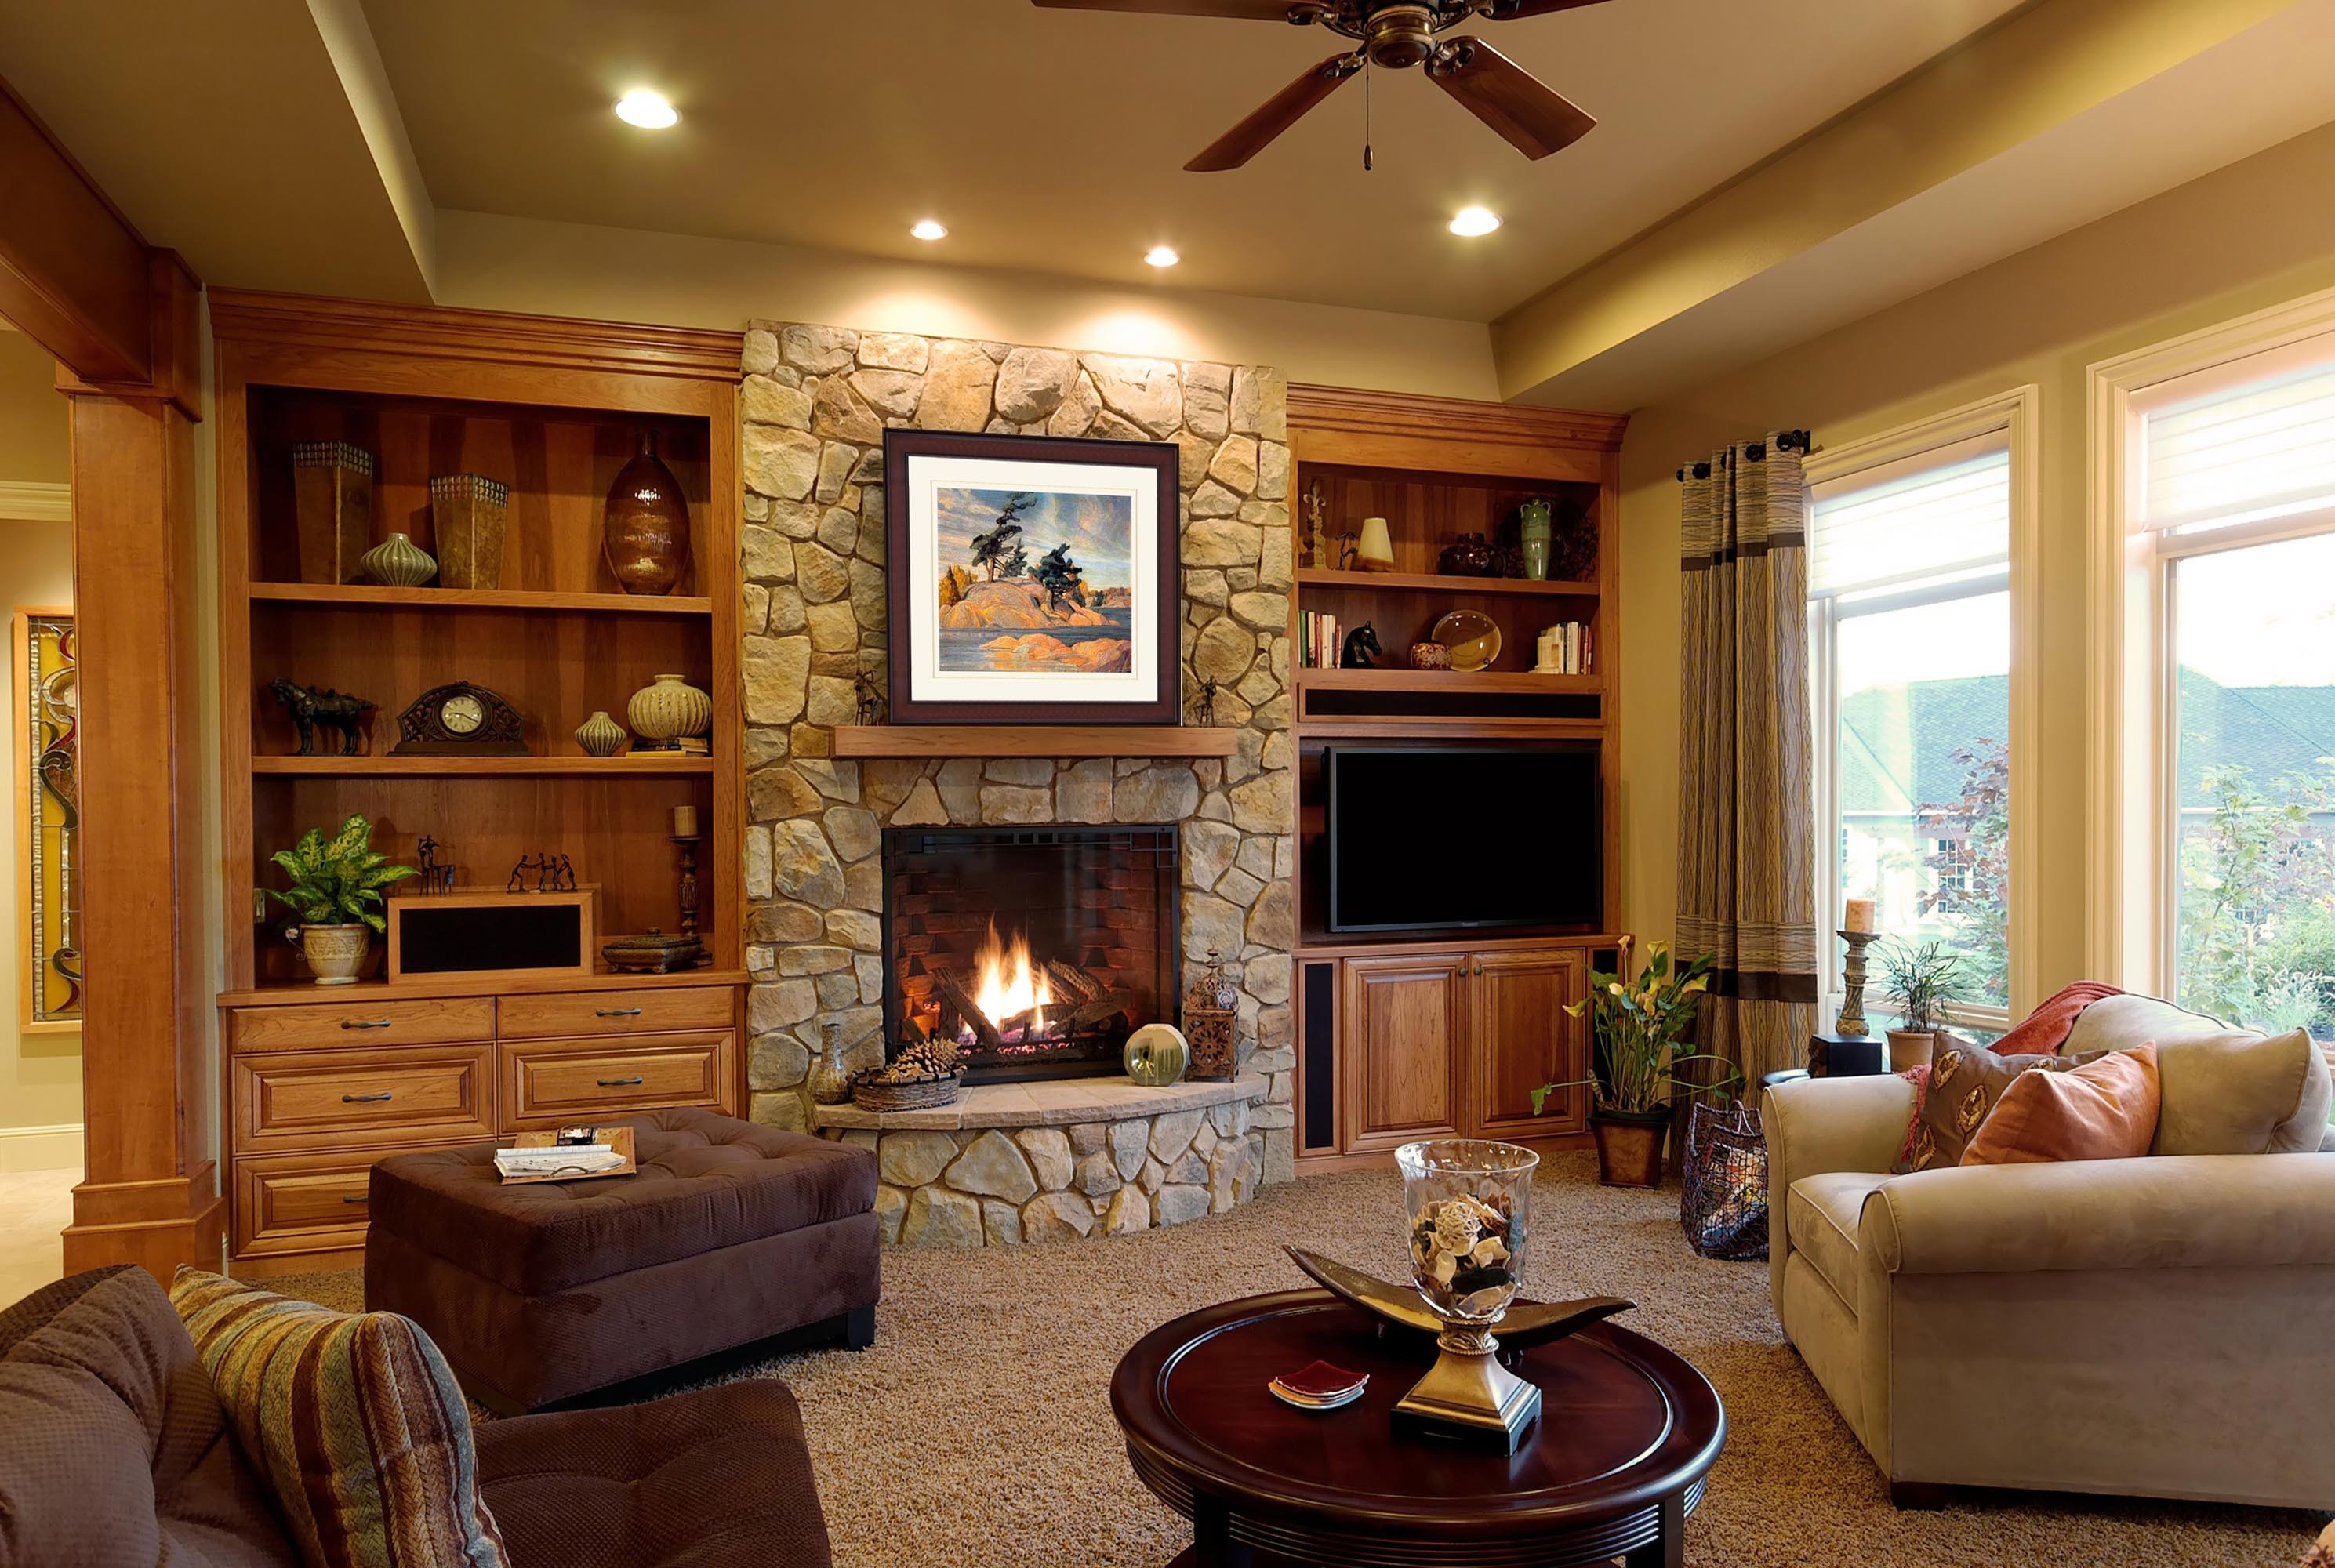 Living Room Decor with Fireplace Luxury Cozy Living Room Ideas Homeideasblog